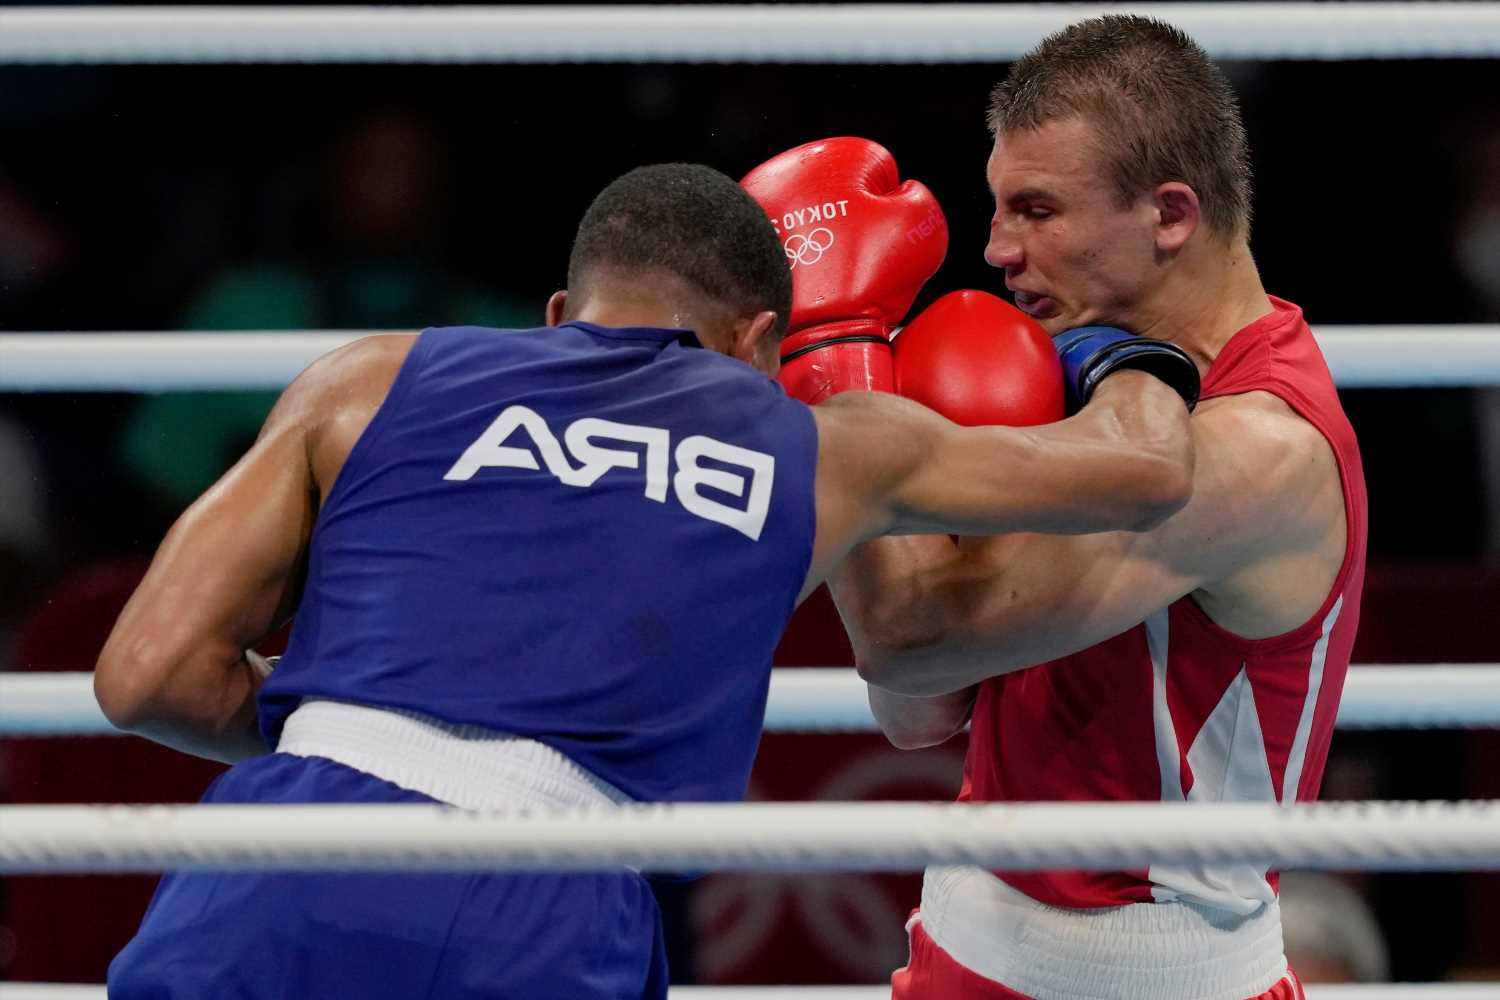 Brazilian Hebert Sousa KOs opponent in final minutes to win stunning Olympic gold after trailing on scorecards